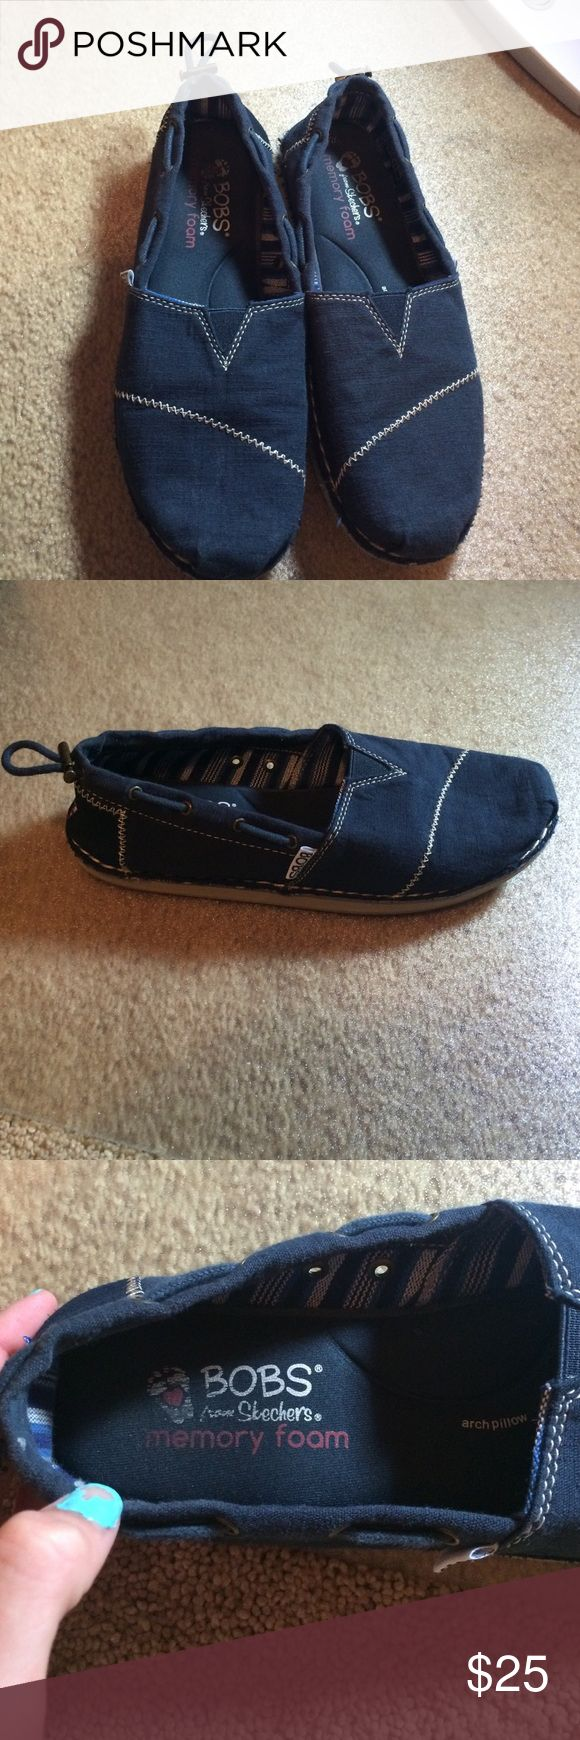 Navy blue Bobs. Worn 2 times!! Memory foam Bobs. Worn 2 times. I am willing to negotiate price. Bobs Shoes Flats & Loafers